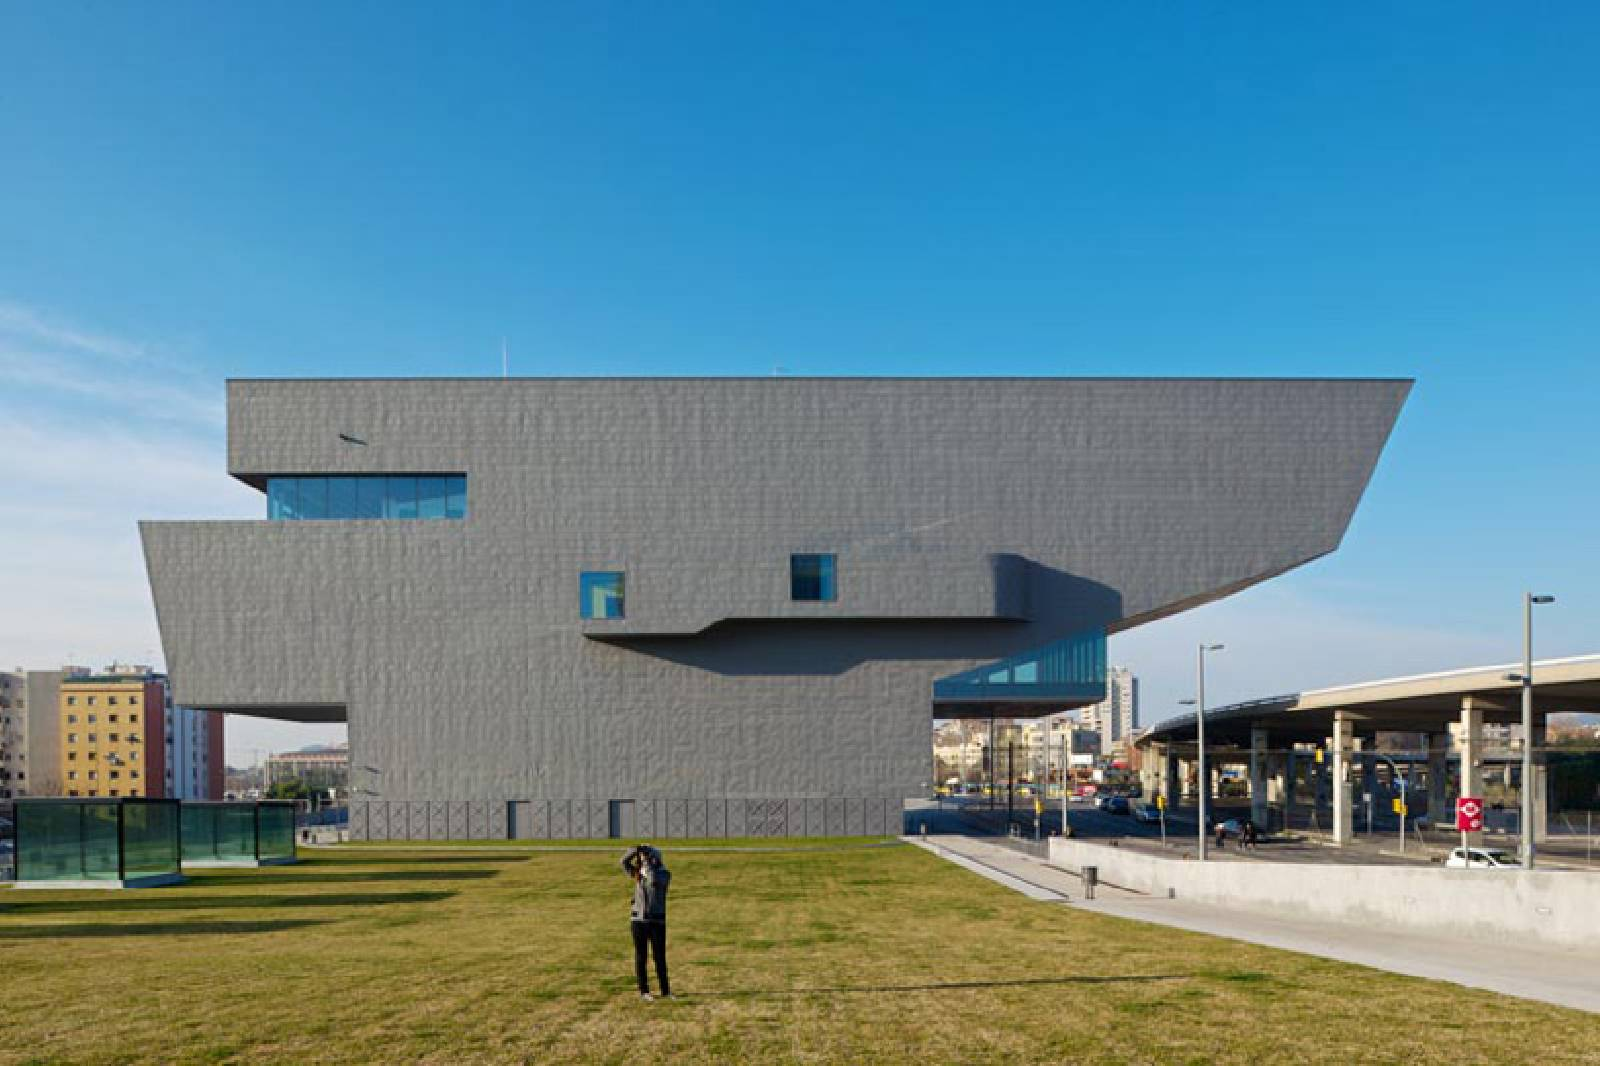 dhub design museum barcelona by mbm arquitectes a as